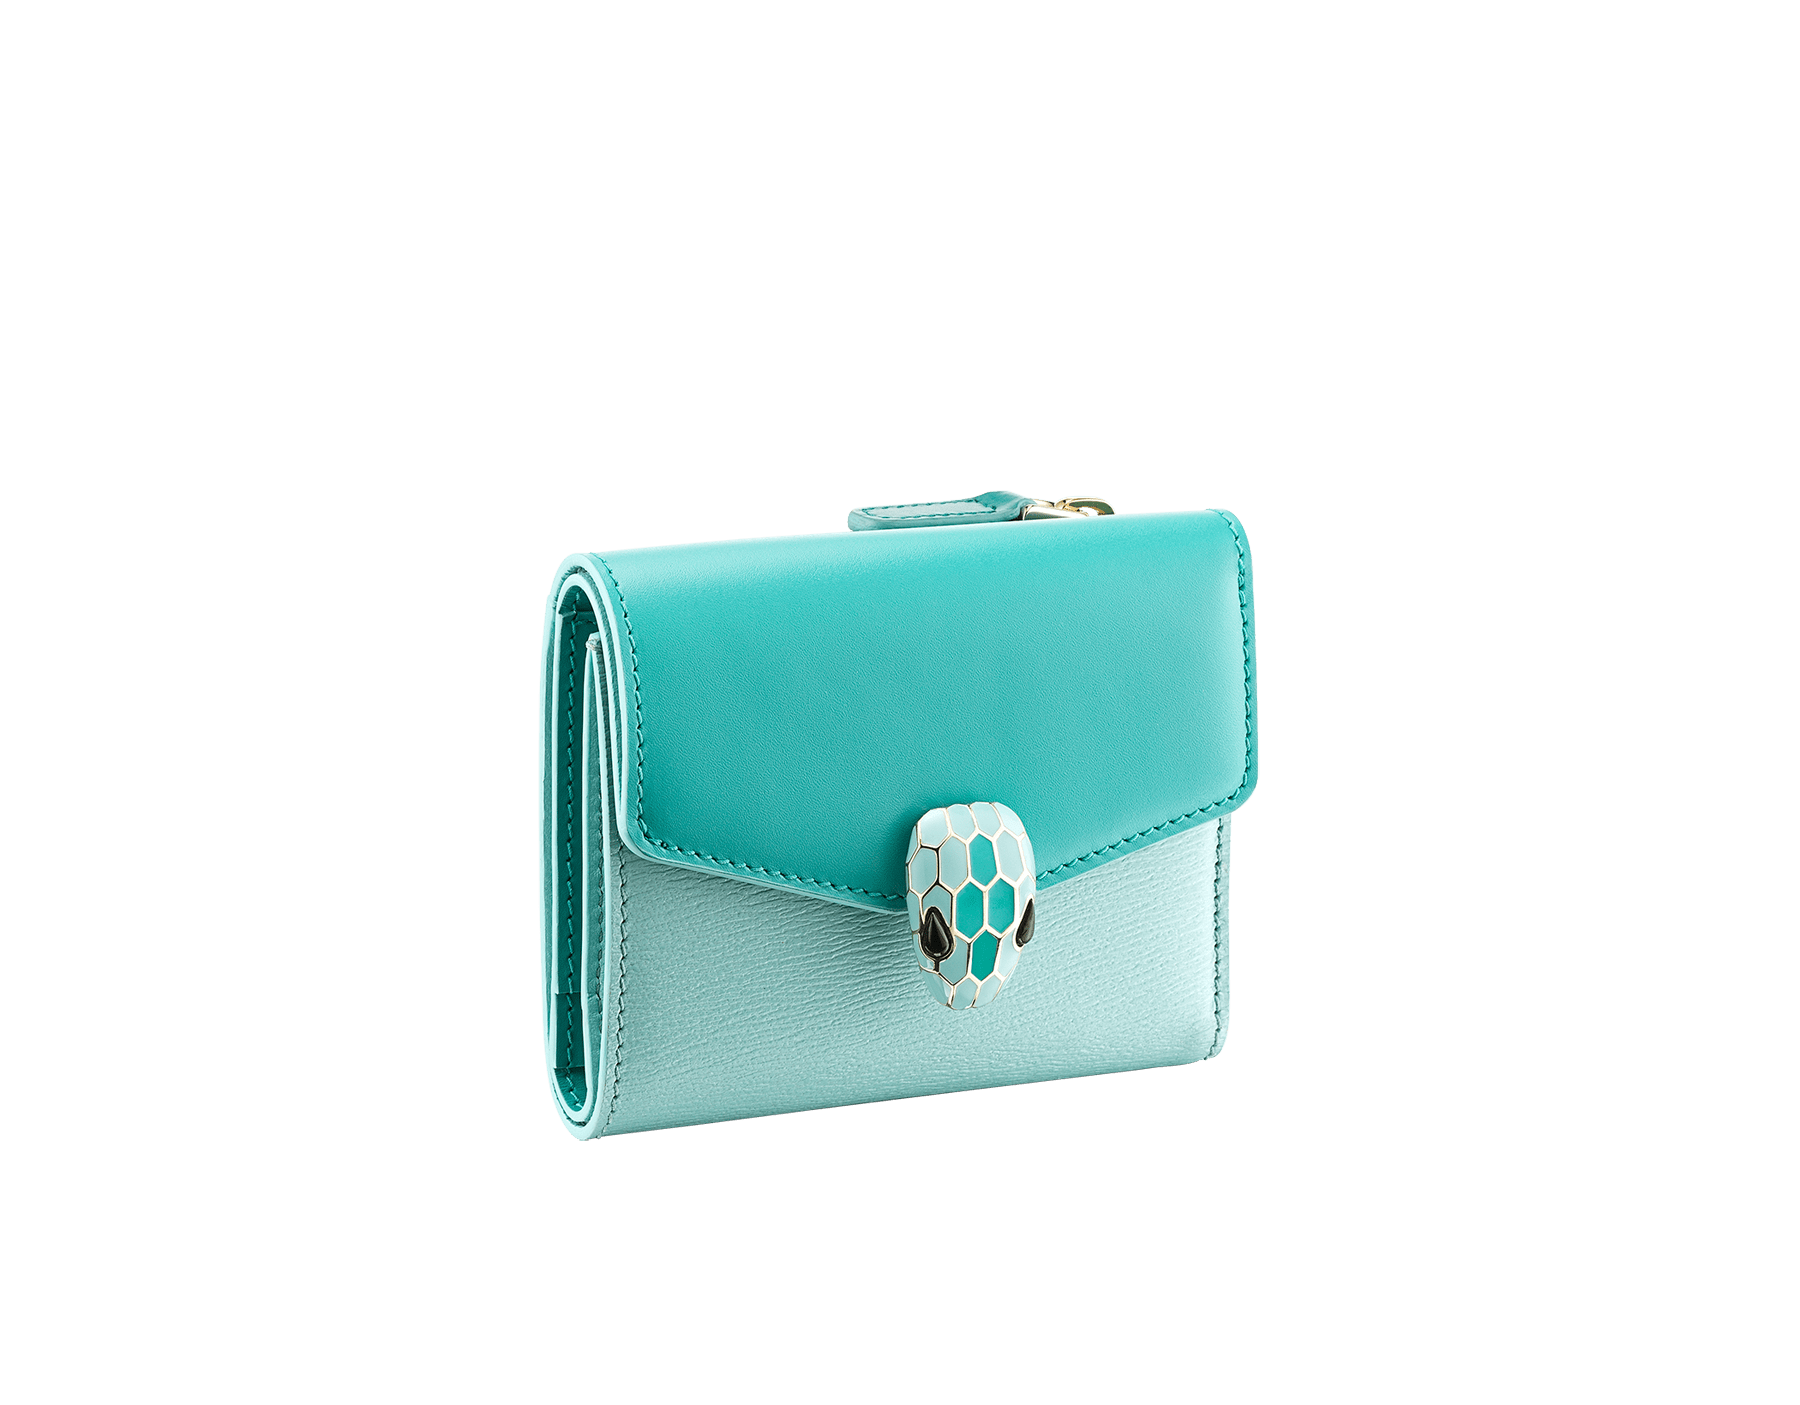 Serpenti Forever compact wallet in arctic jade calf leather and glacier turquoise goatskin. Iconic light gold plated brass snakehead stud closure in glacier turquoise and arctic jade enamel, with black onyx eyes. SEA-SLIMCOMPACT-CLb image 1